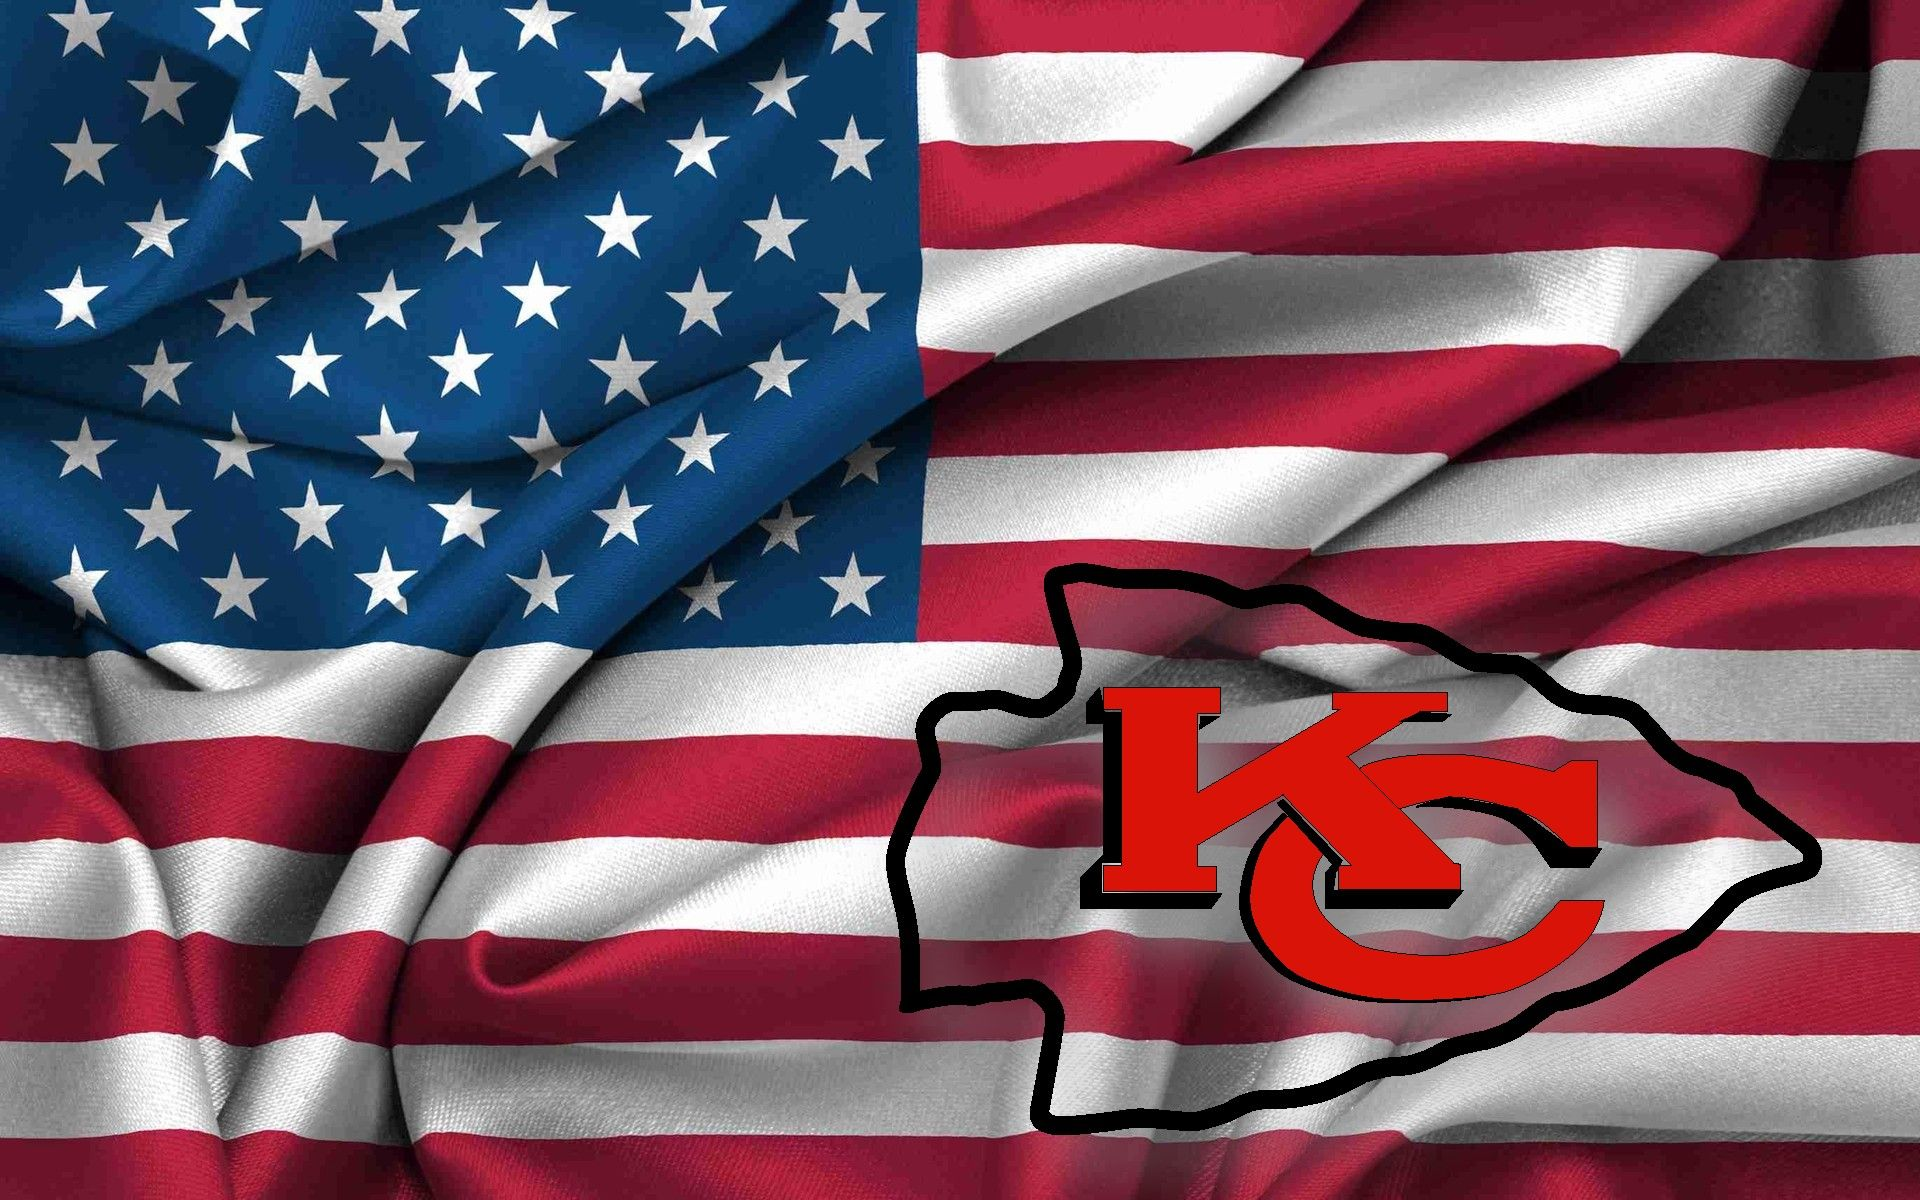 Kc Chiefs Wallpaper Images Of Kansas City Chiefs Logo On Usa Flag Wavy Canvas 1920x1200 Kansas City Chiefs Logo Kc Chiefs Football Kansas City Chiefs